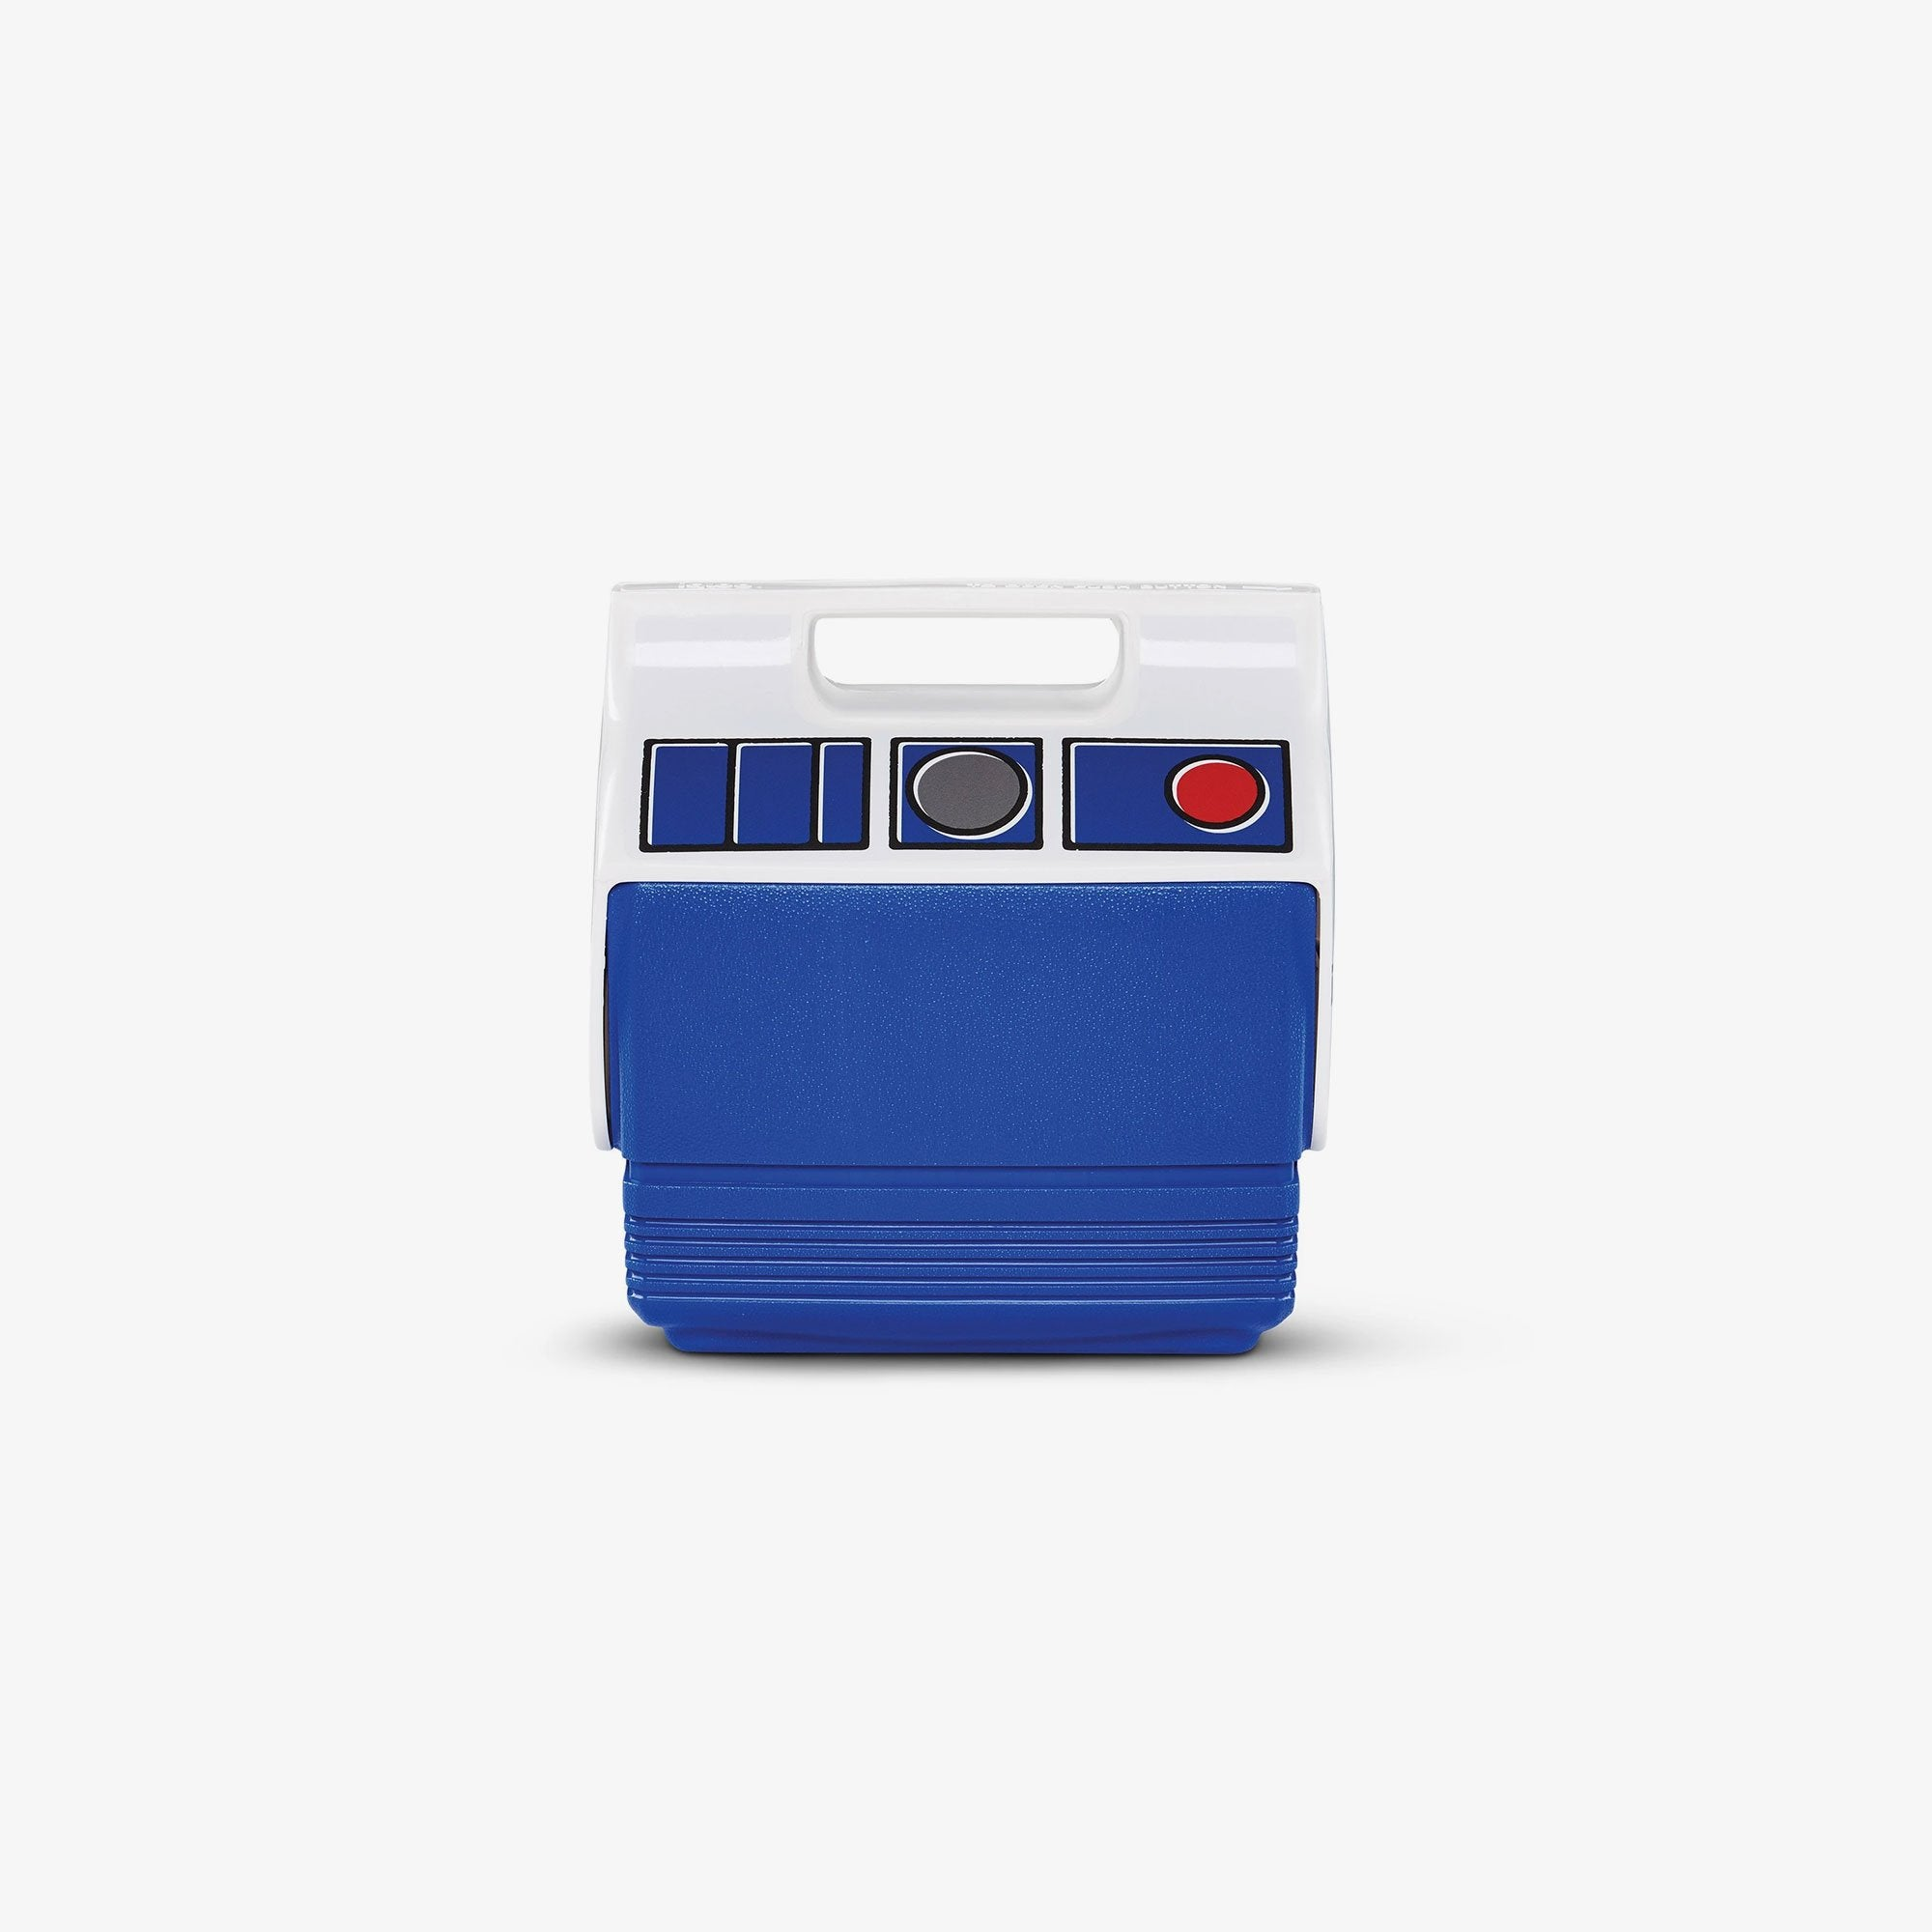 Large View | Star Wars Playmate Mini R2D2 4 Qt Cooler